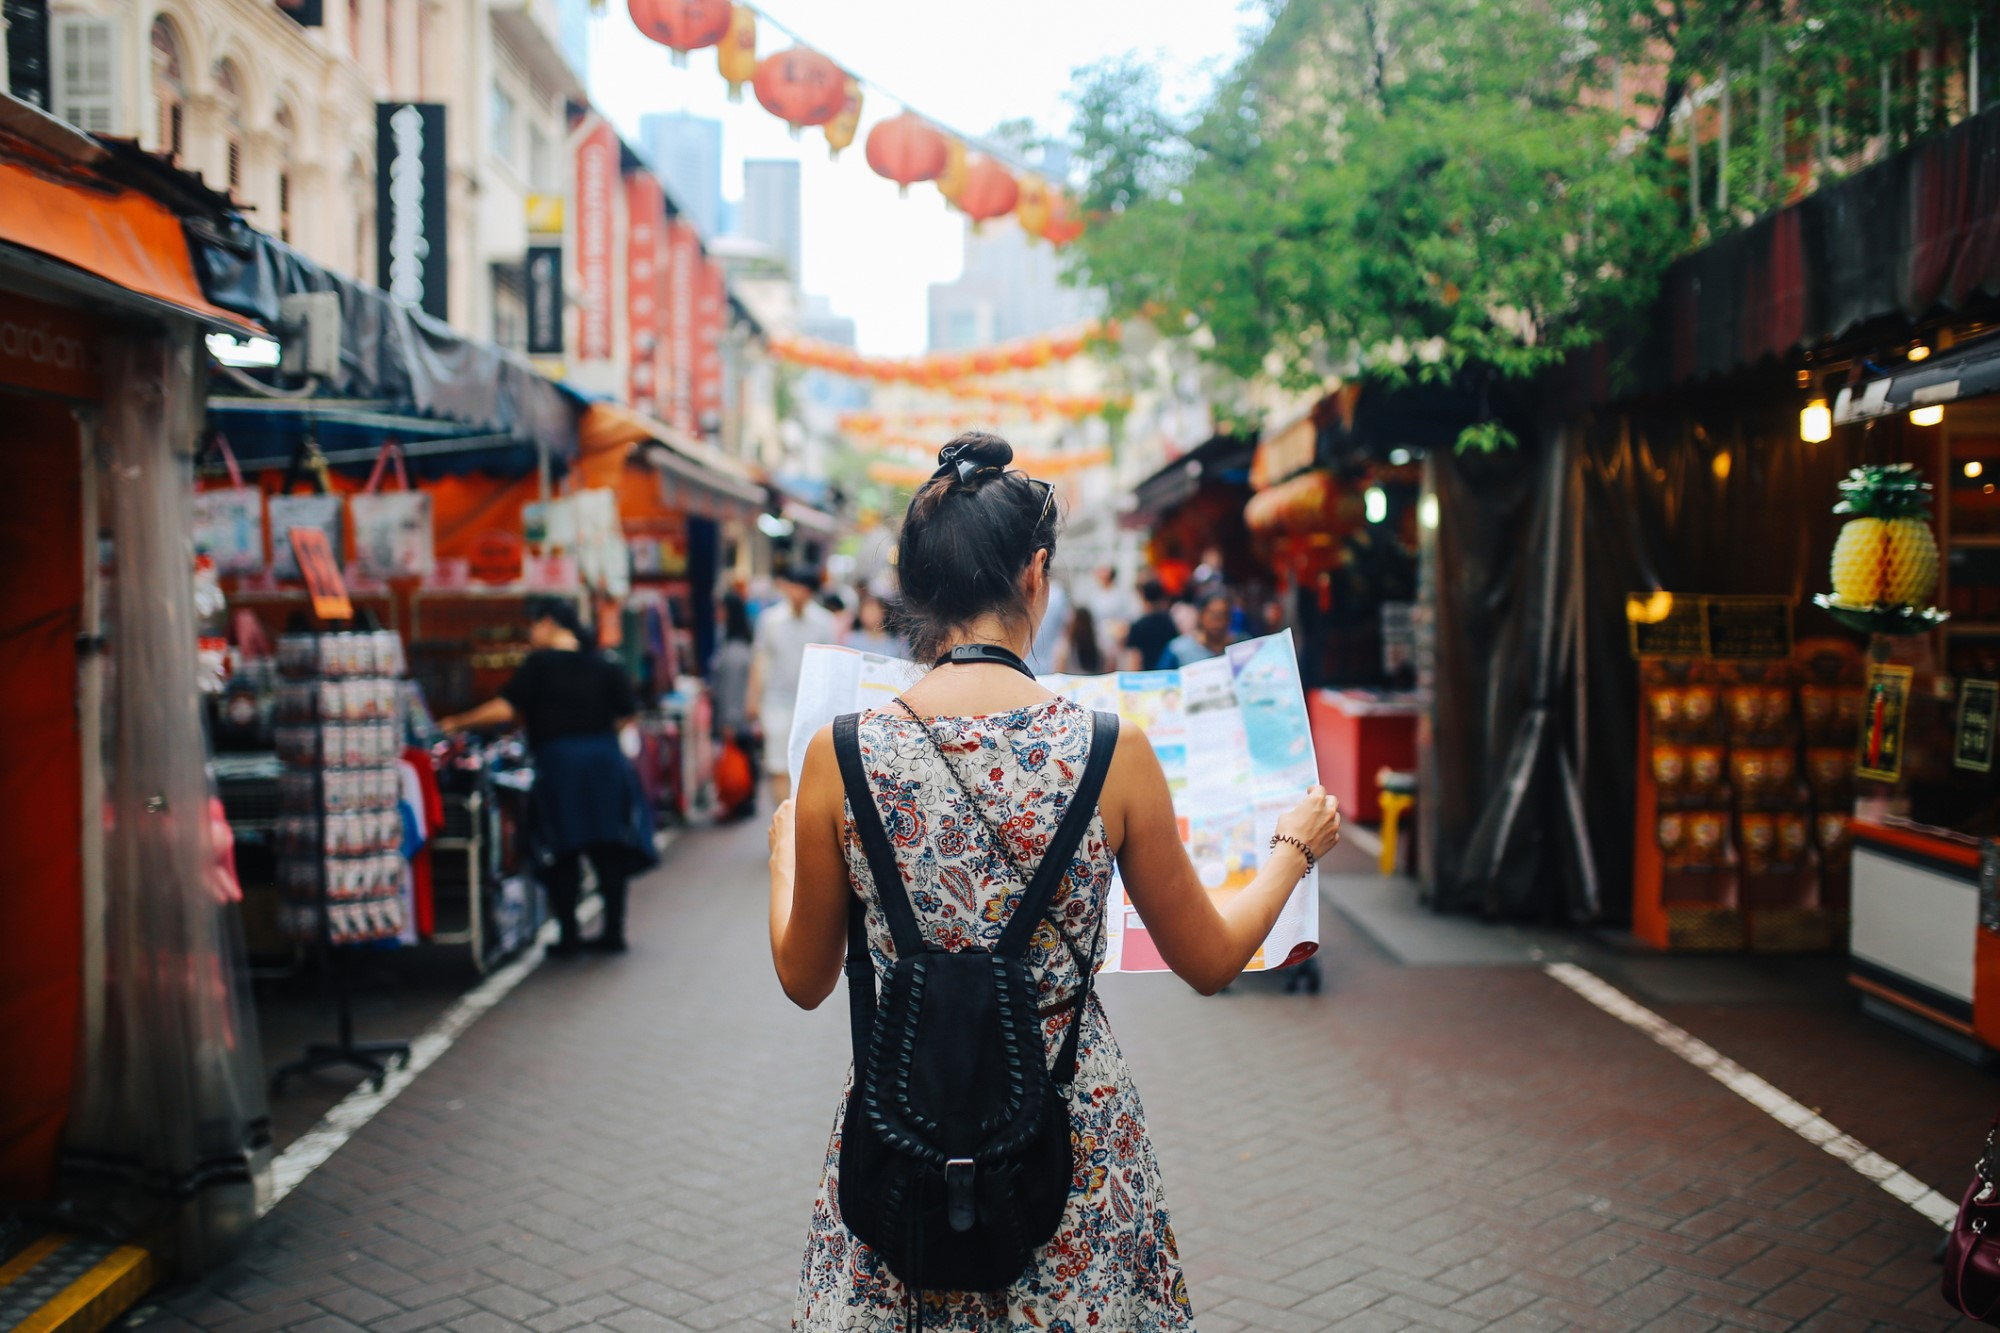 How to Make a Living While Traveling image